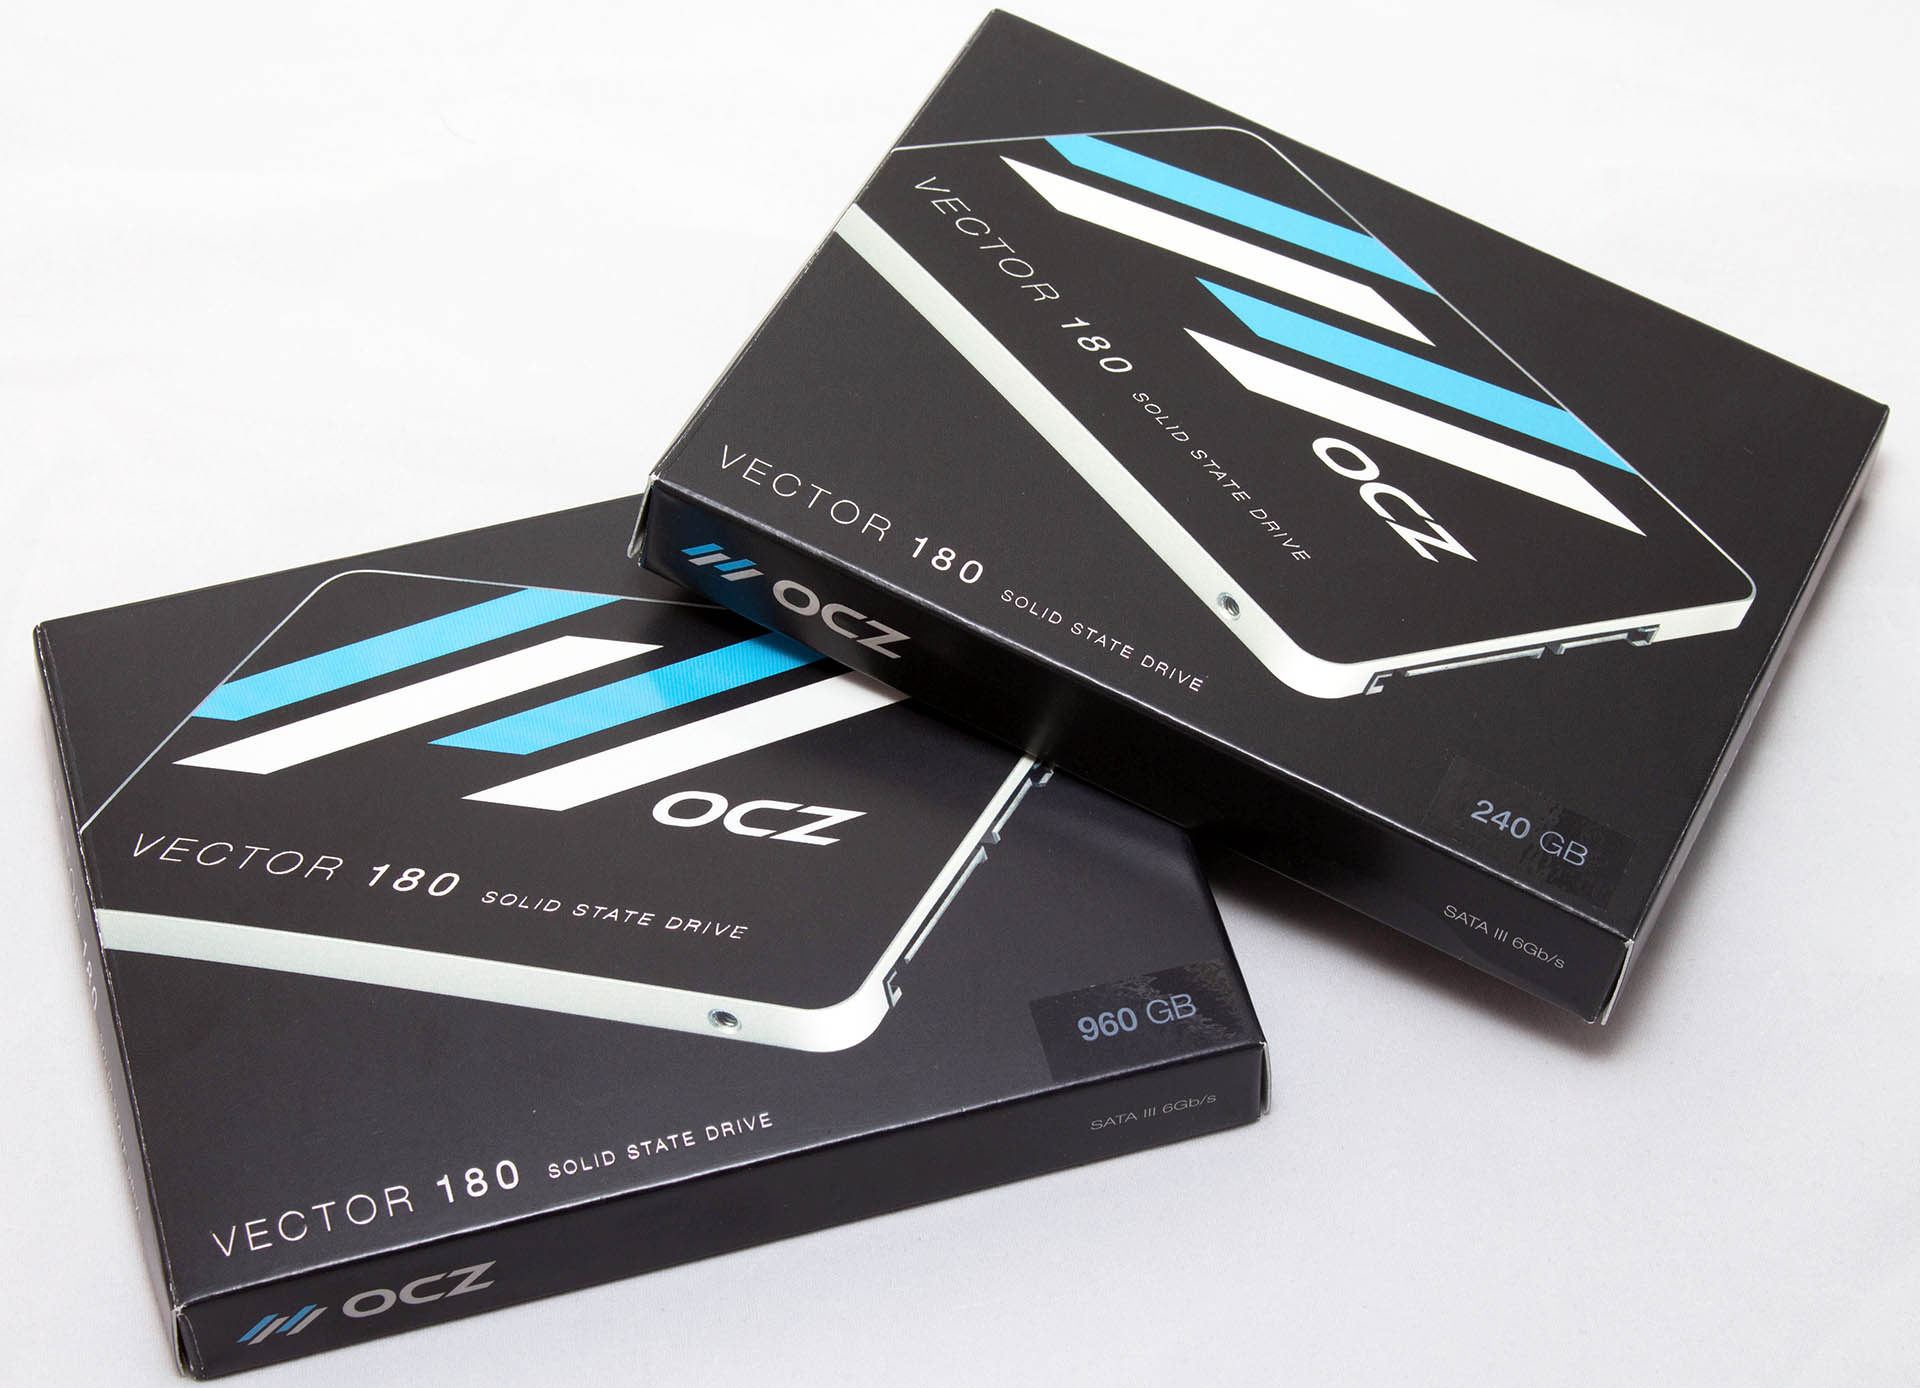 OCZ Vector 180 240 & 960GB test